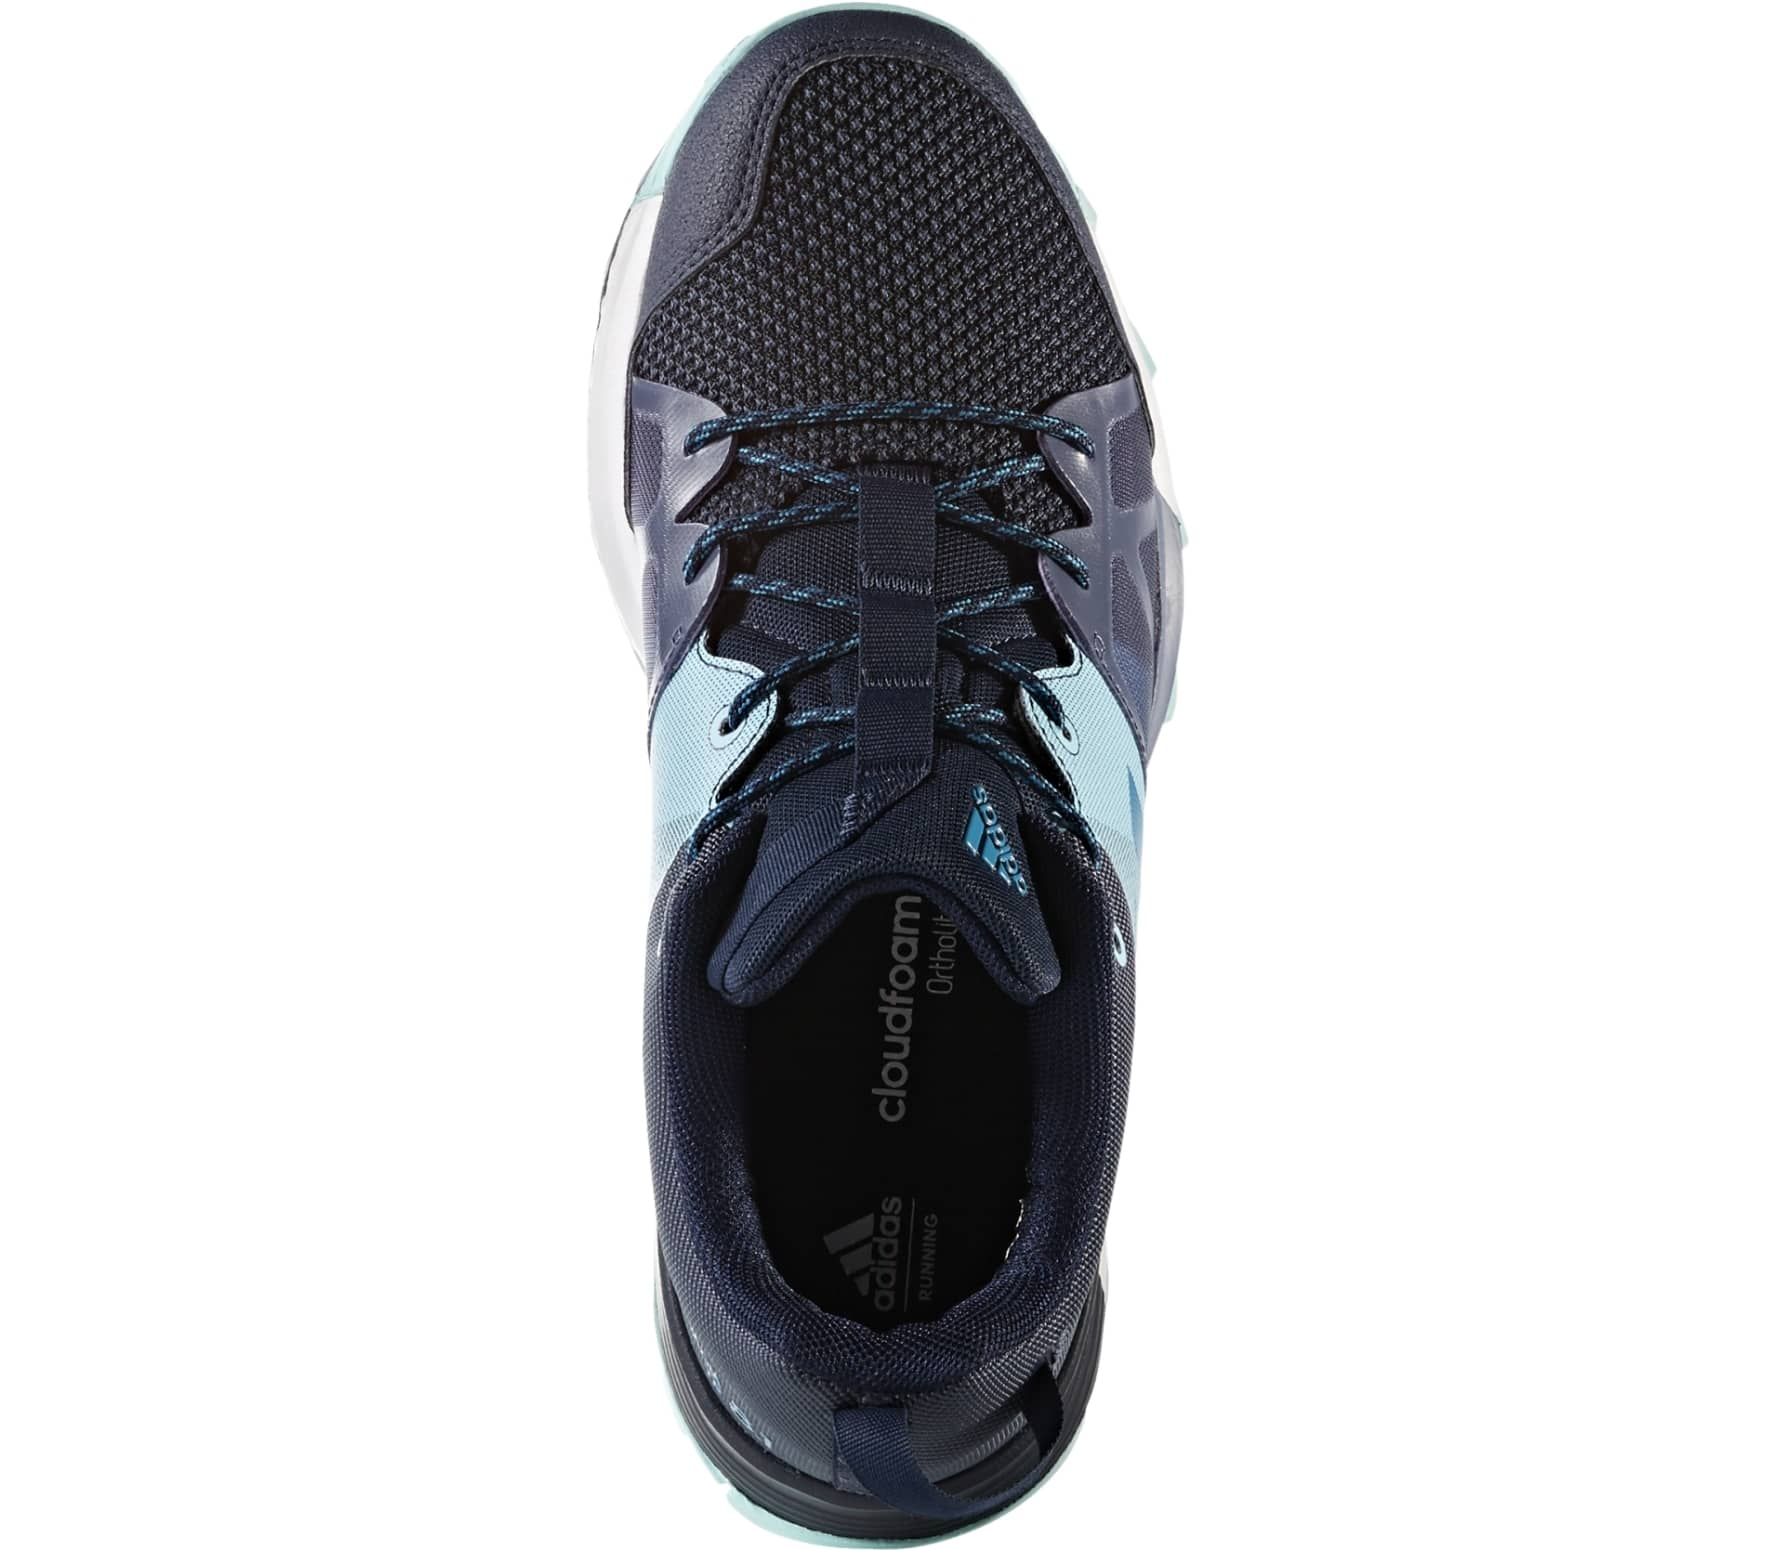 Adidas Kanadia 8.1 TR women's running shoes (dark bluegreen)